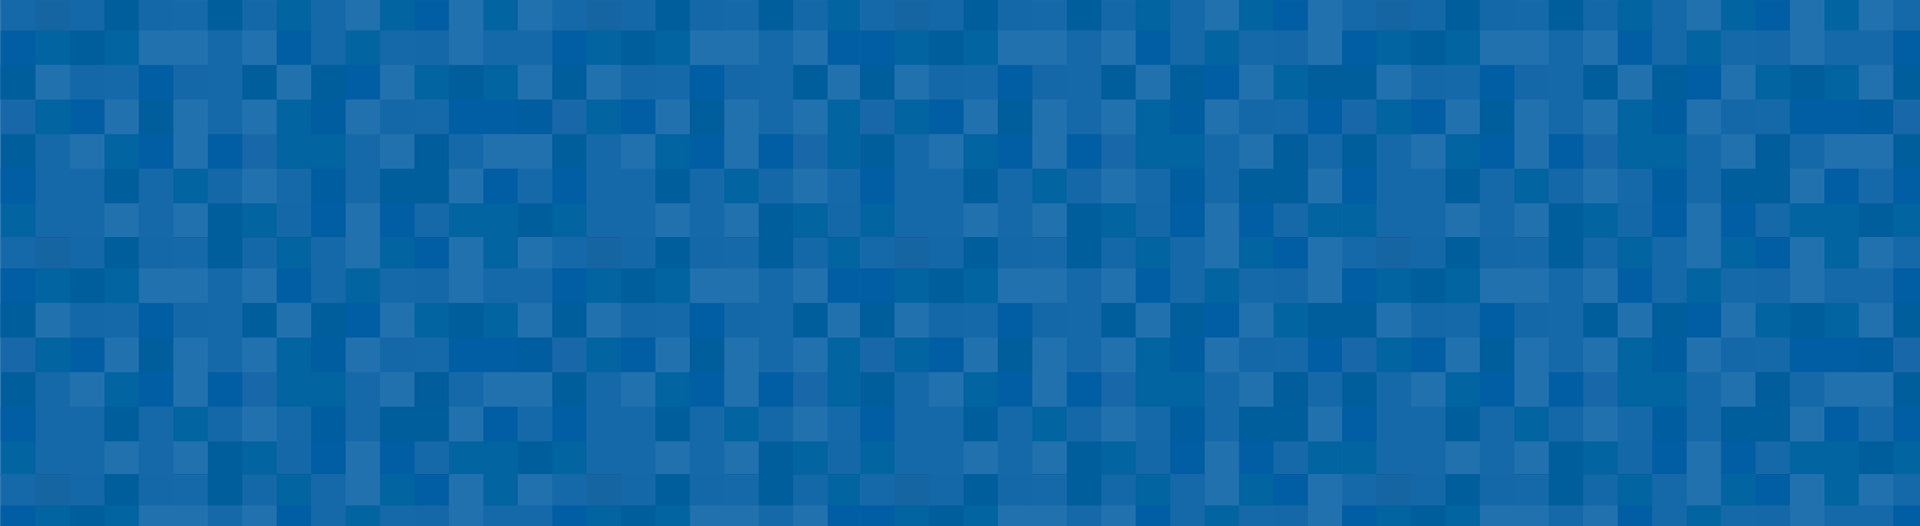 Minecraft Earth pixel background